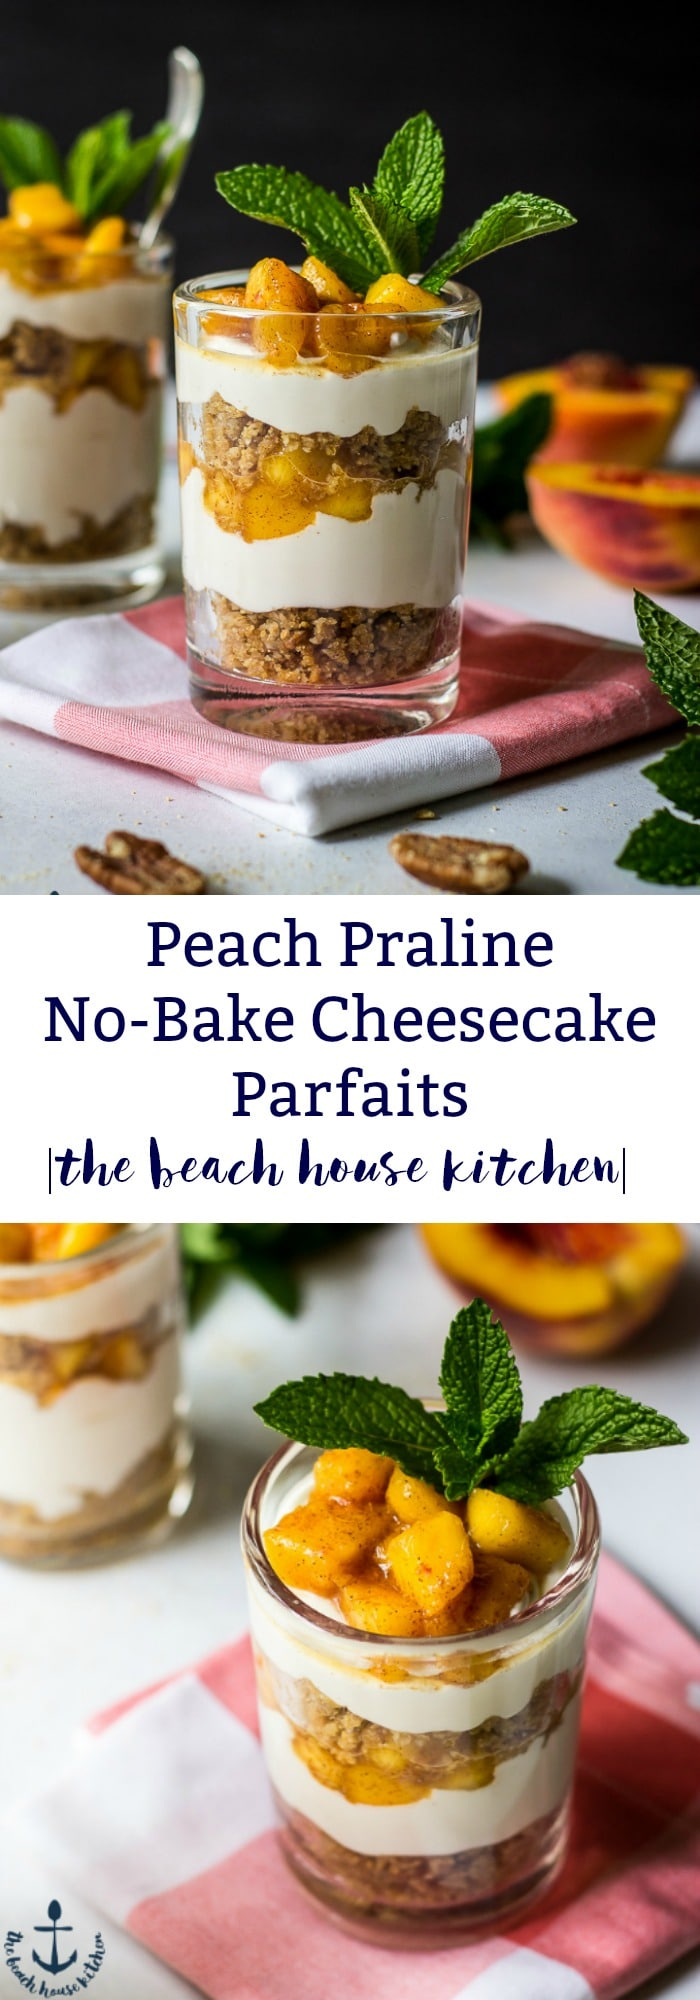 Peach Praline No-Bake Cheesecake Parfaits